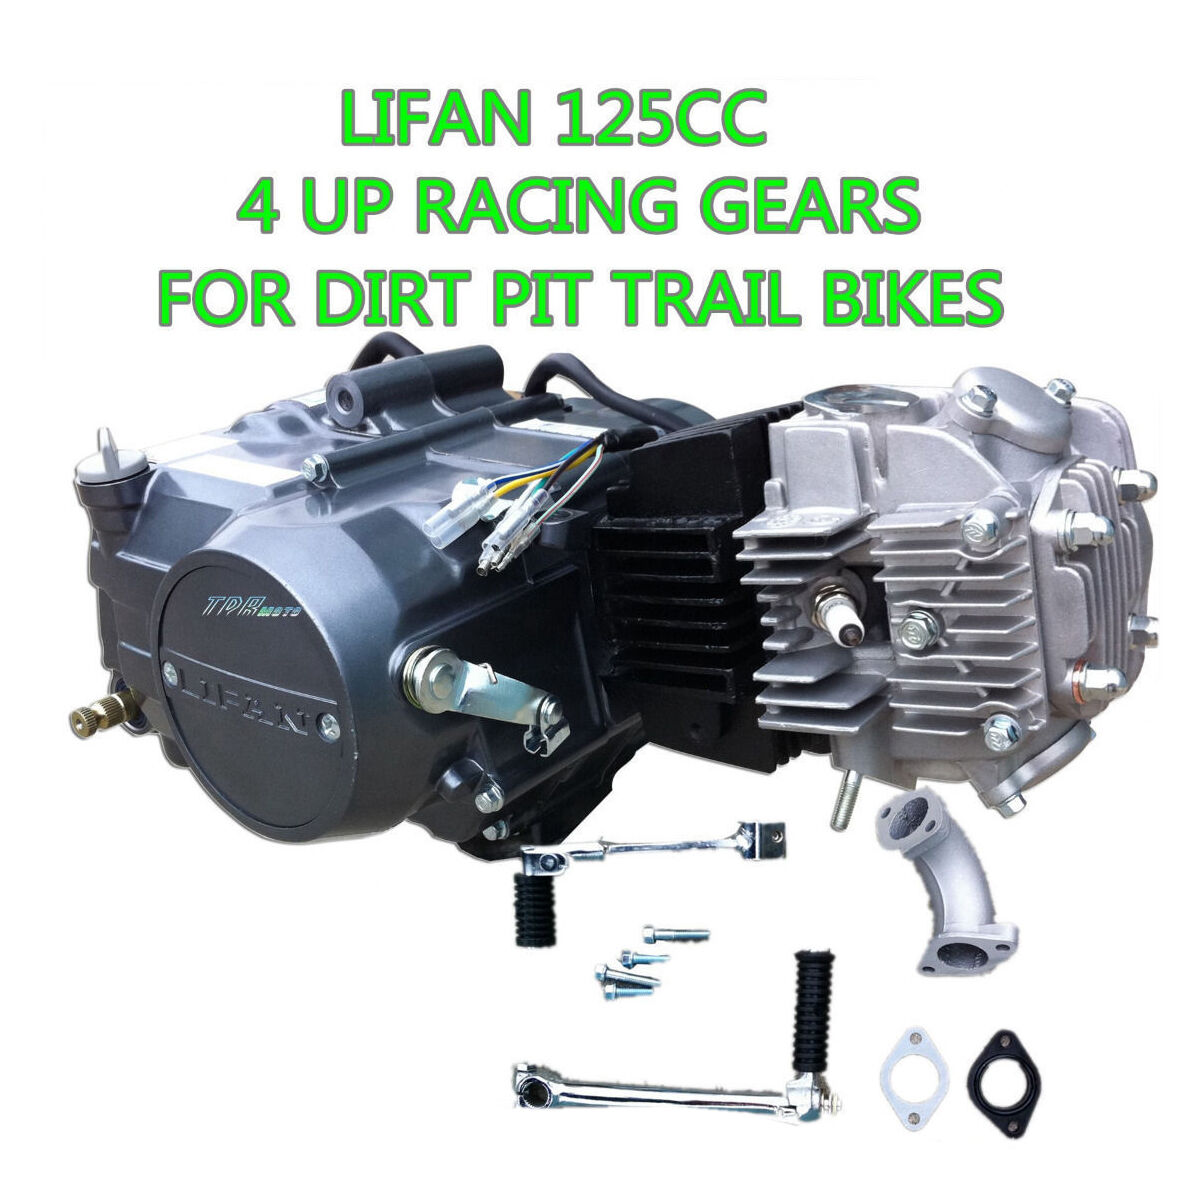 Zongshen 125cc Engine Diagram Clutch Basic Guide Wiring Complete Motorcycle Engines Ebay Rh Com Au Pit Bike Parts Bicycle Kit